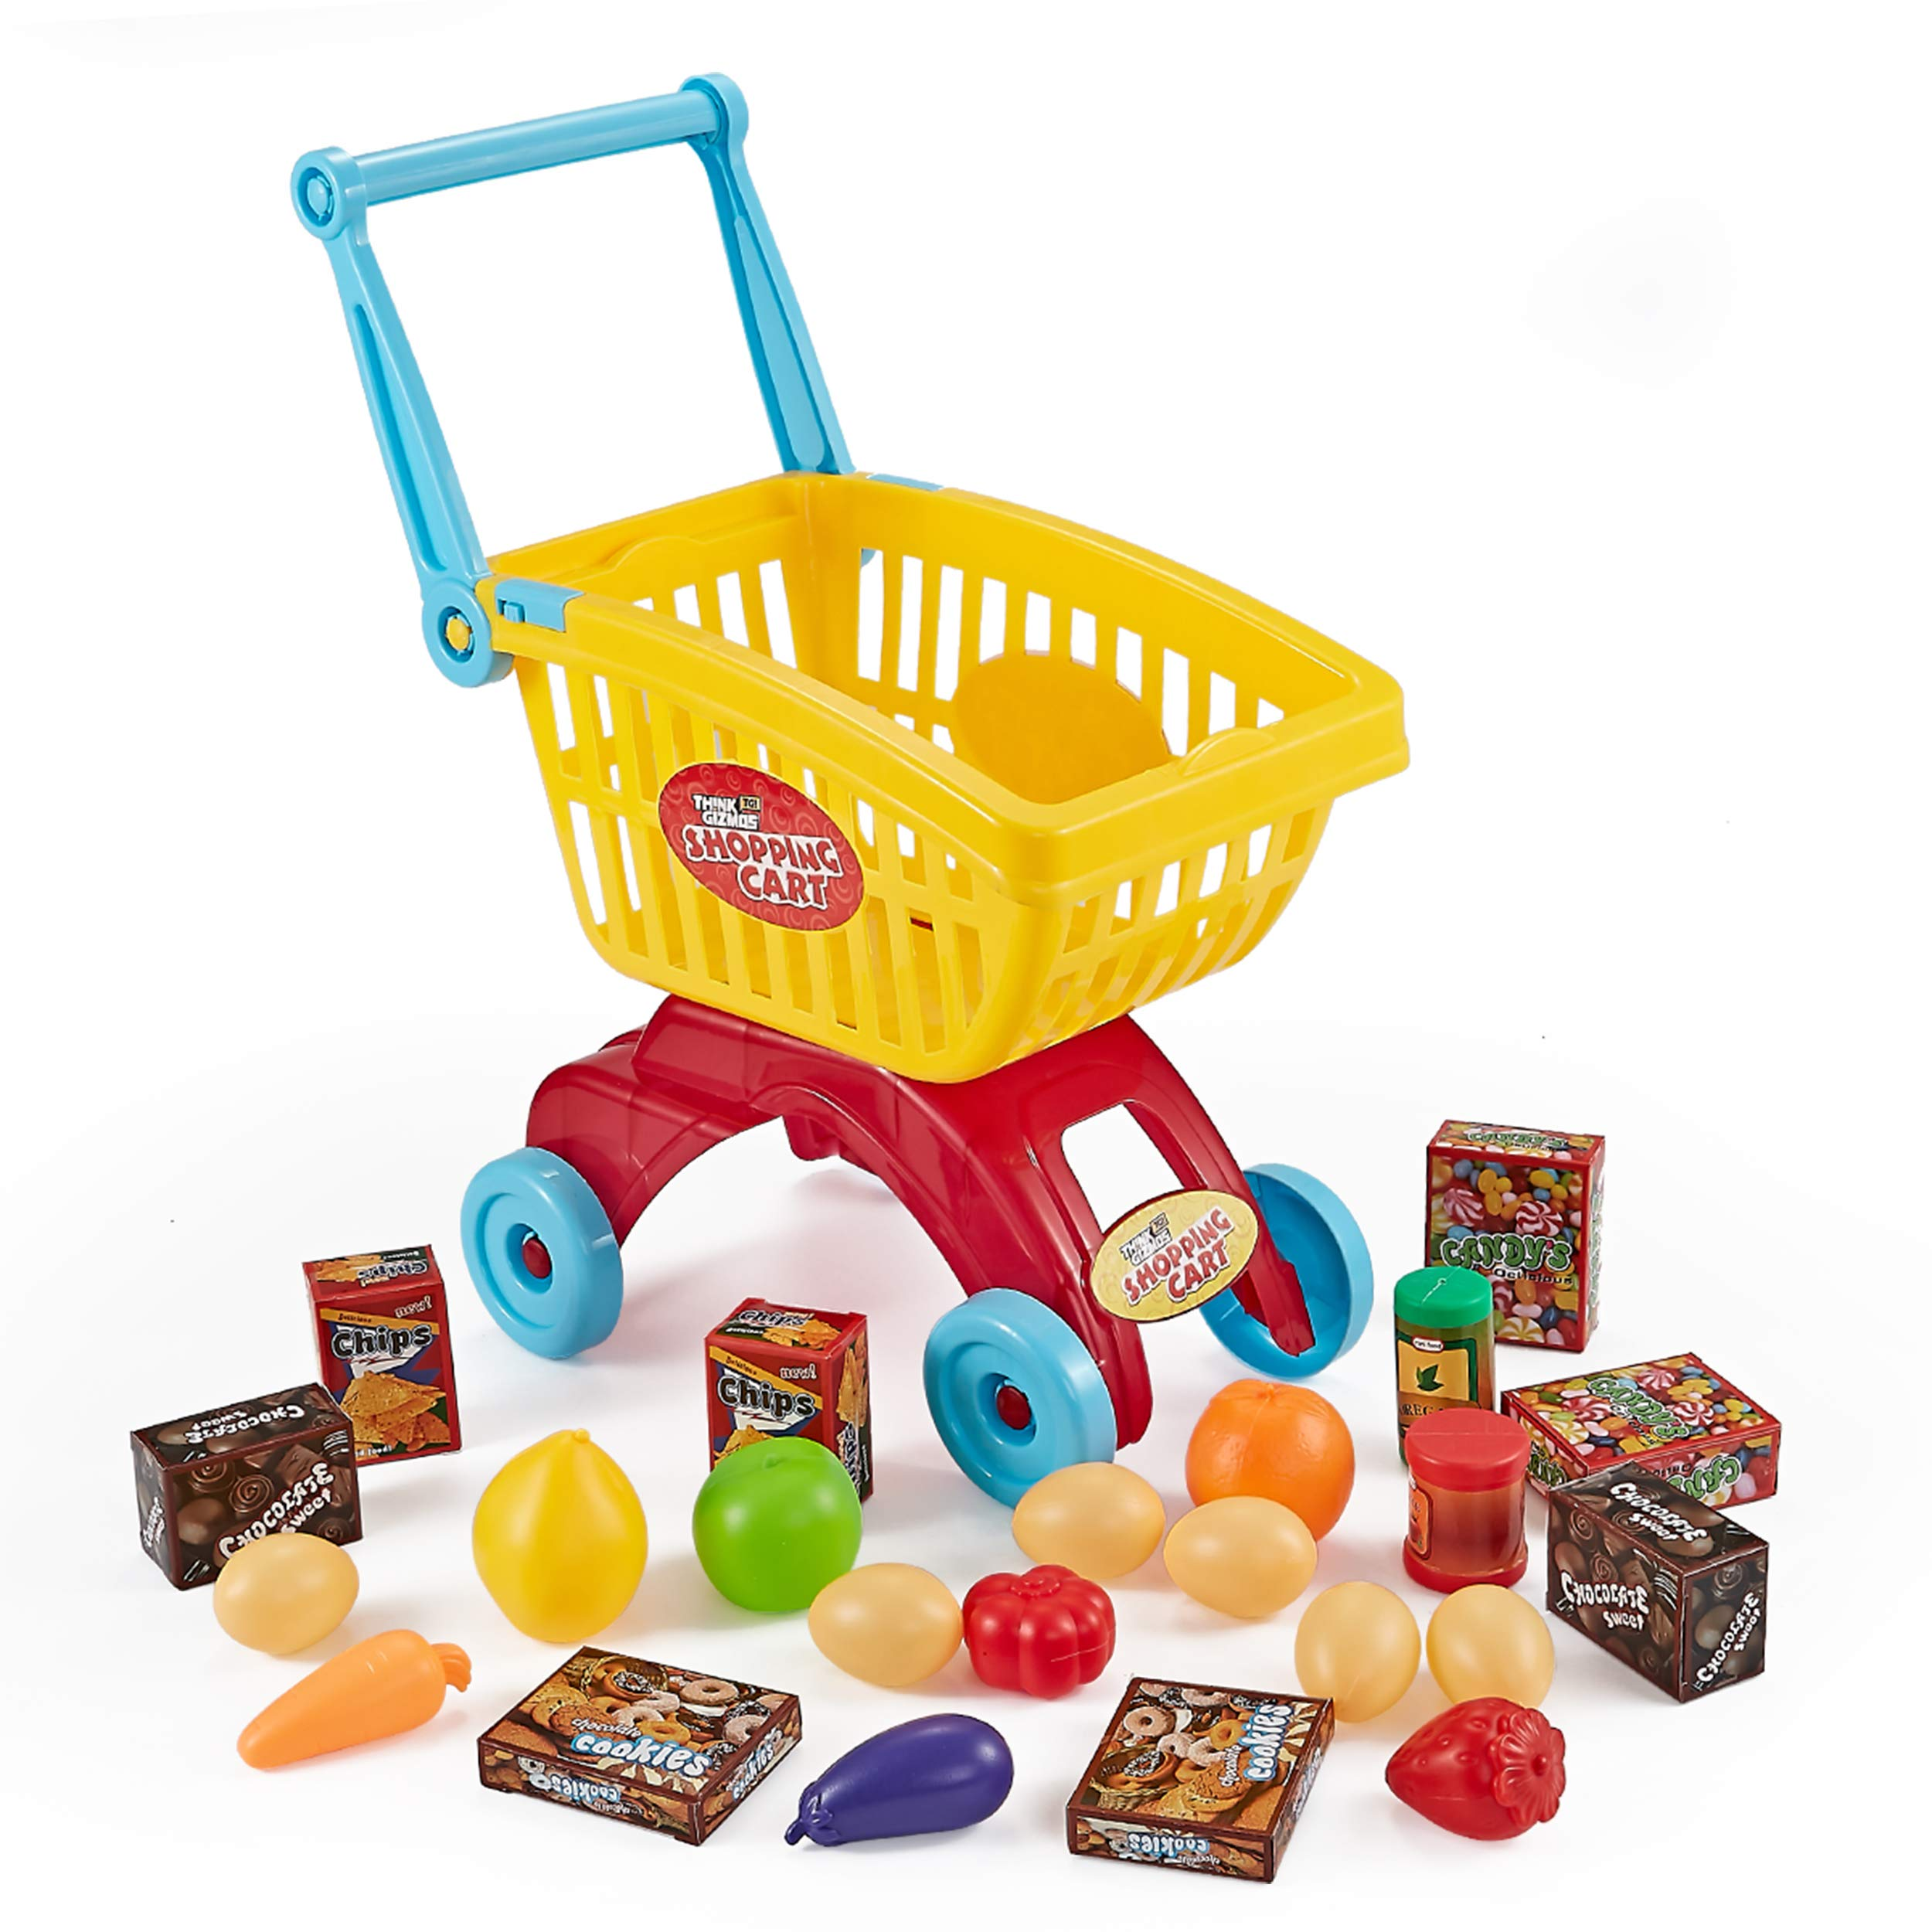 Think Gizmos Shopping Cart for Toddlers - Supermarket Play Set - TG705 - Toddler Play Set Gift for Boys & Girls Aged 3 4 5+